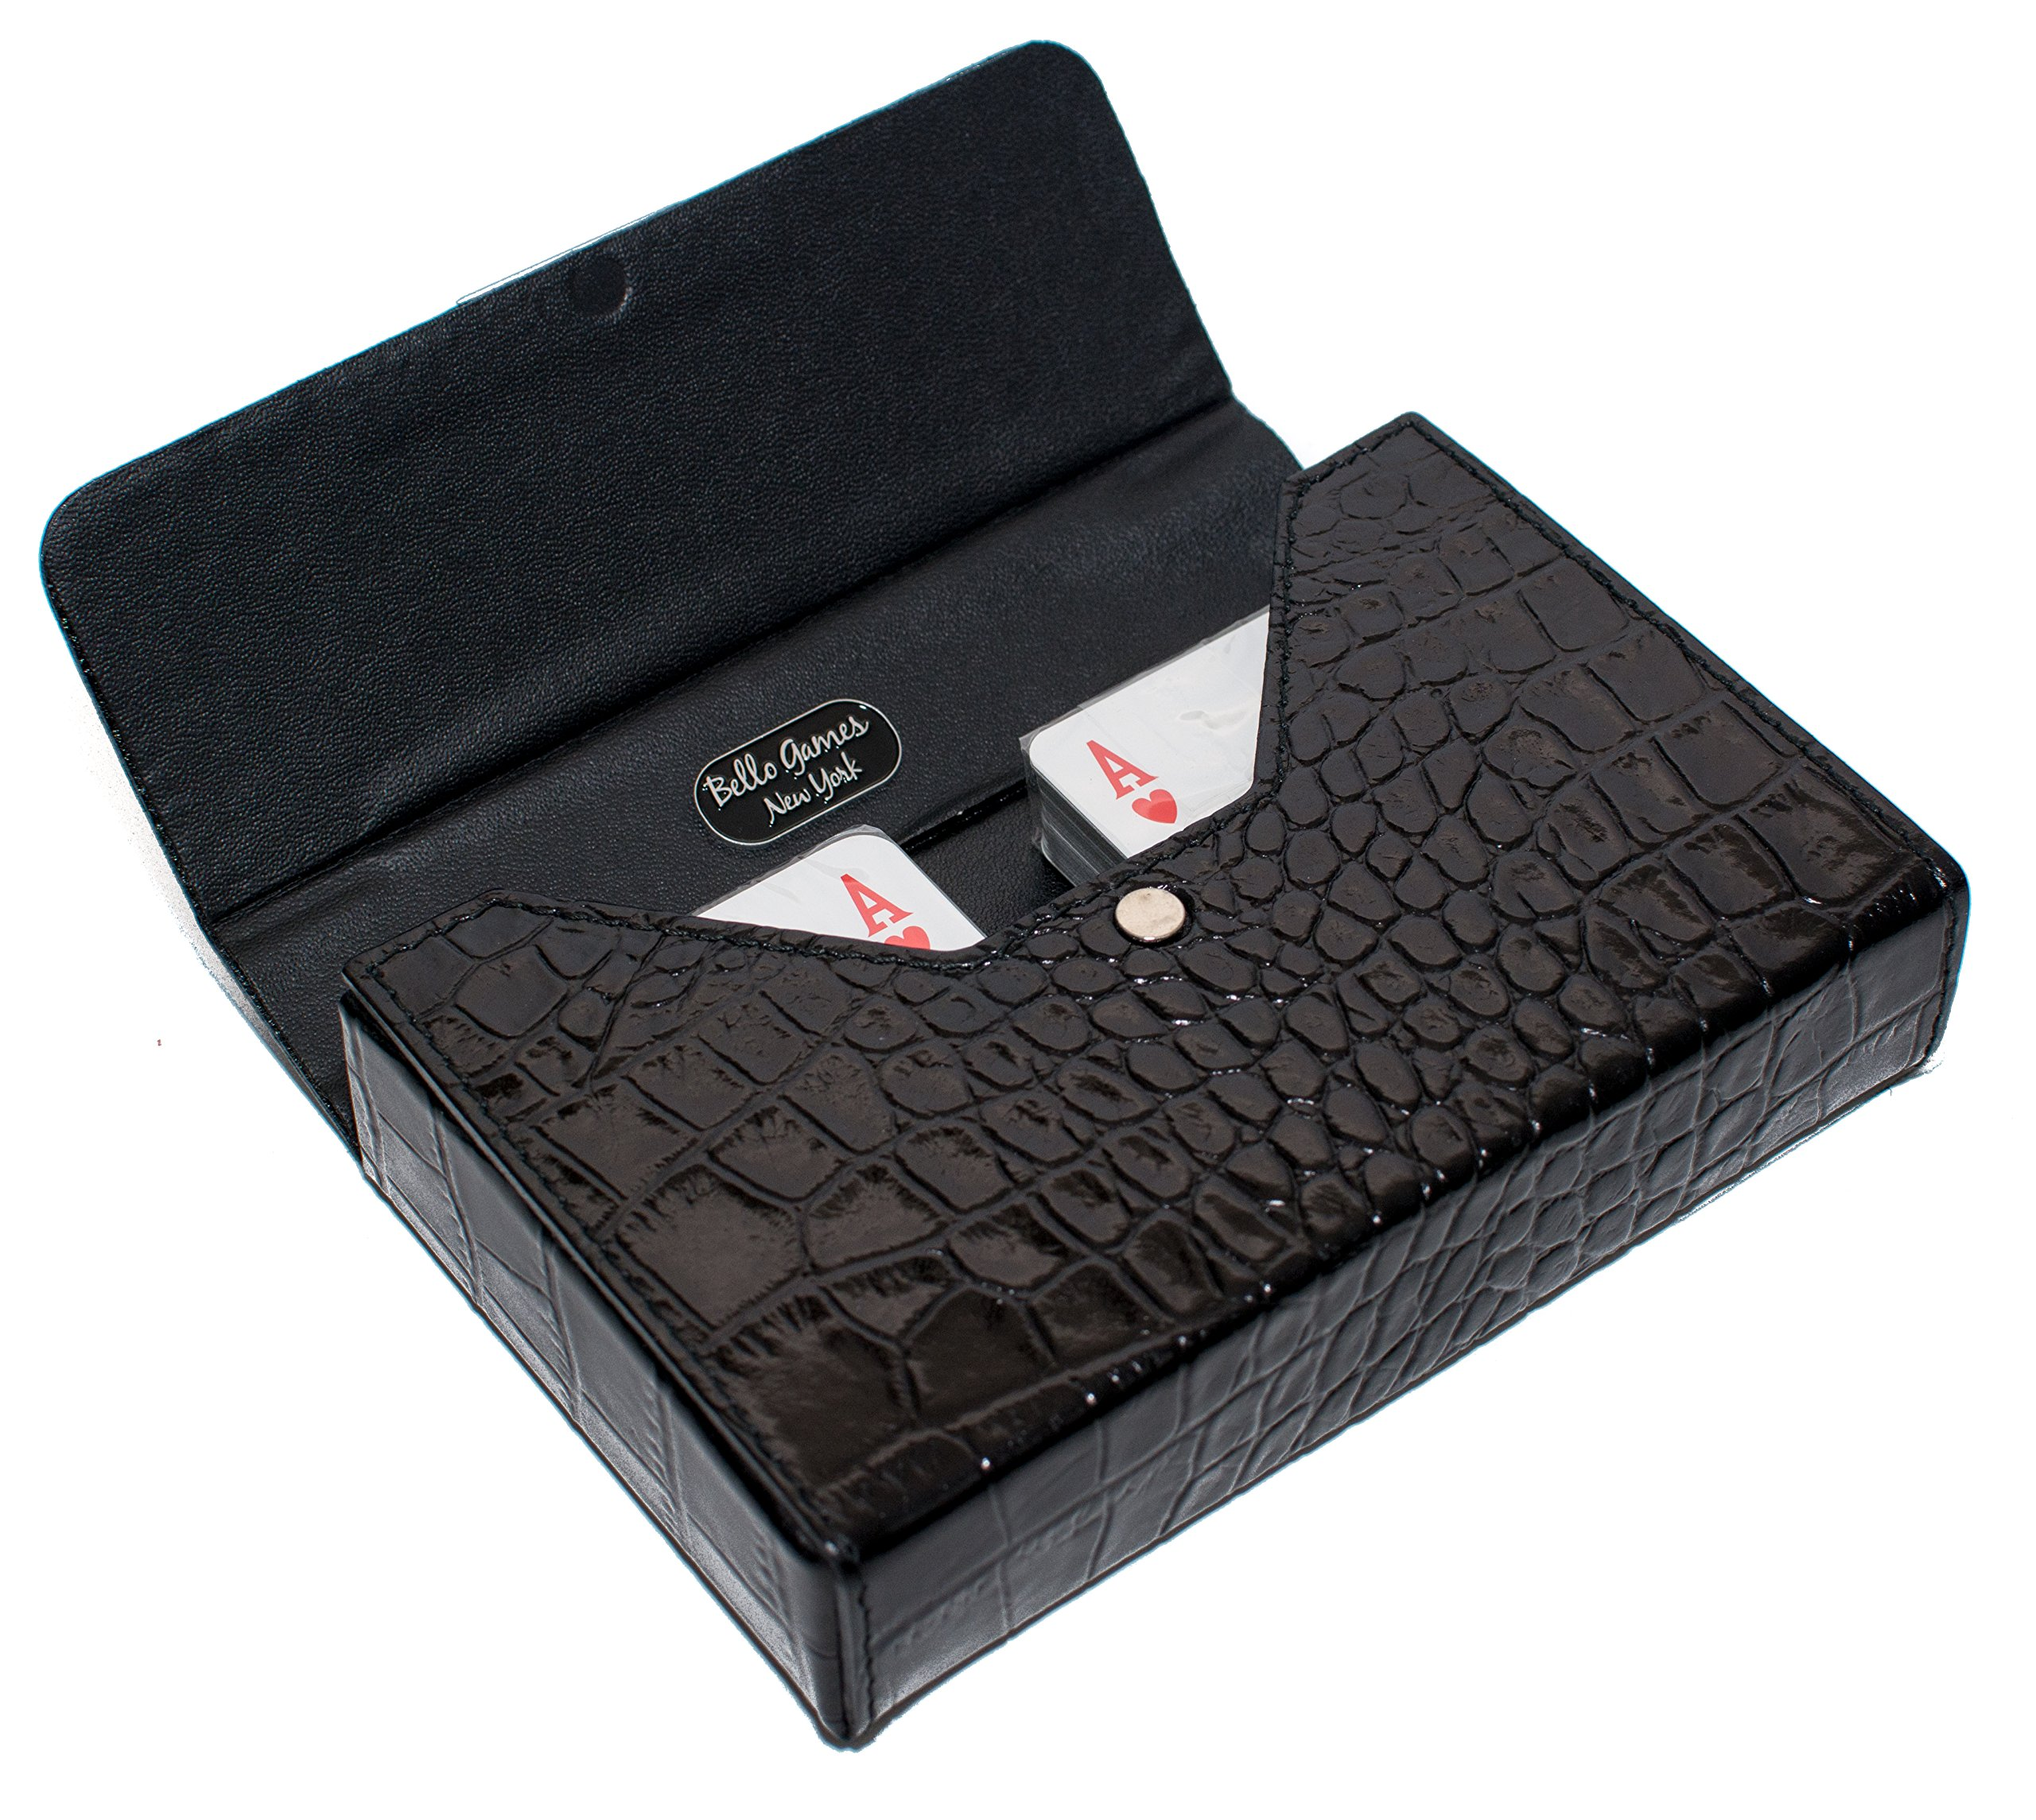 Bello Games Collezioni - Ponte Vecchio Deluxe Genuine Crocodile Card Set with Swarovski Crystals from Italy